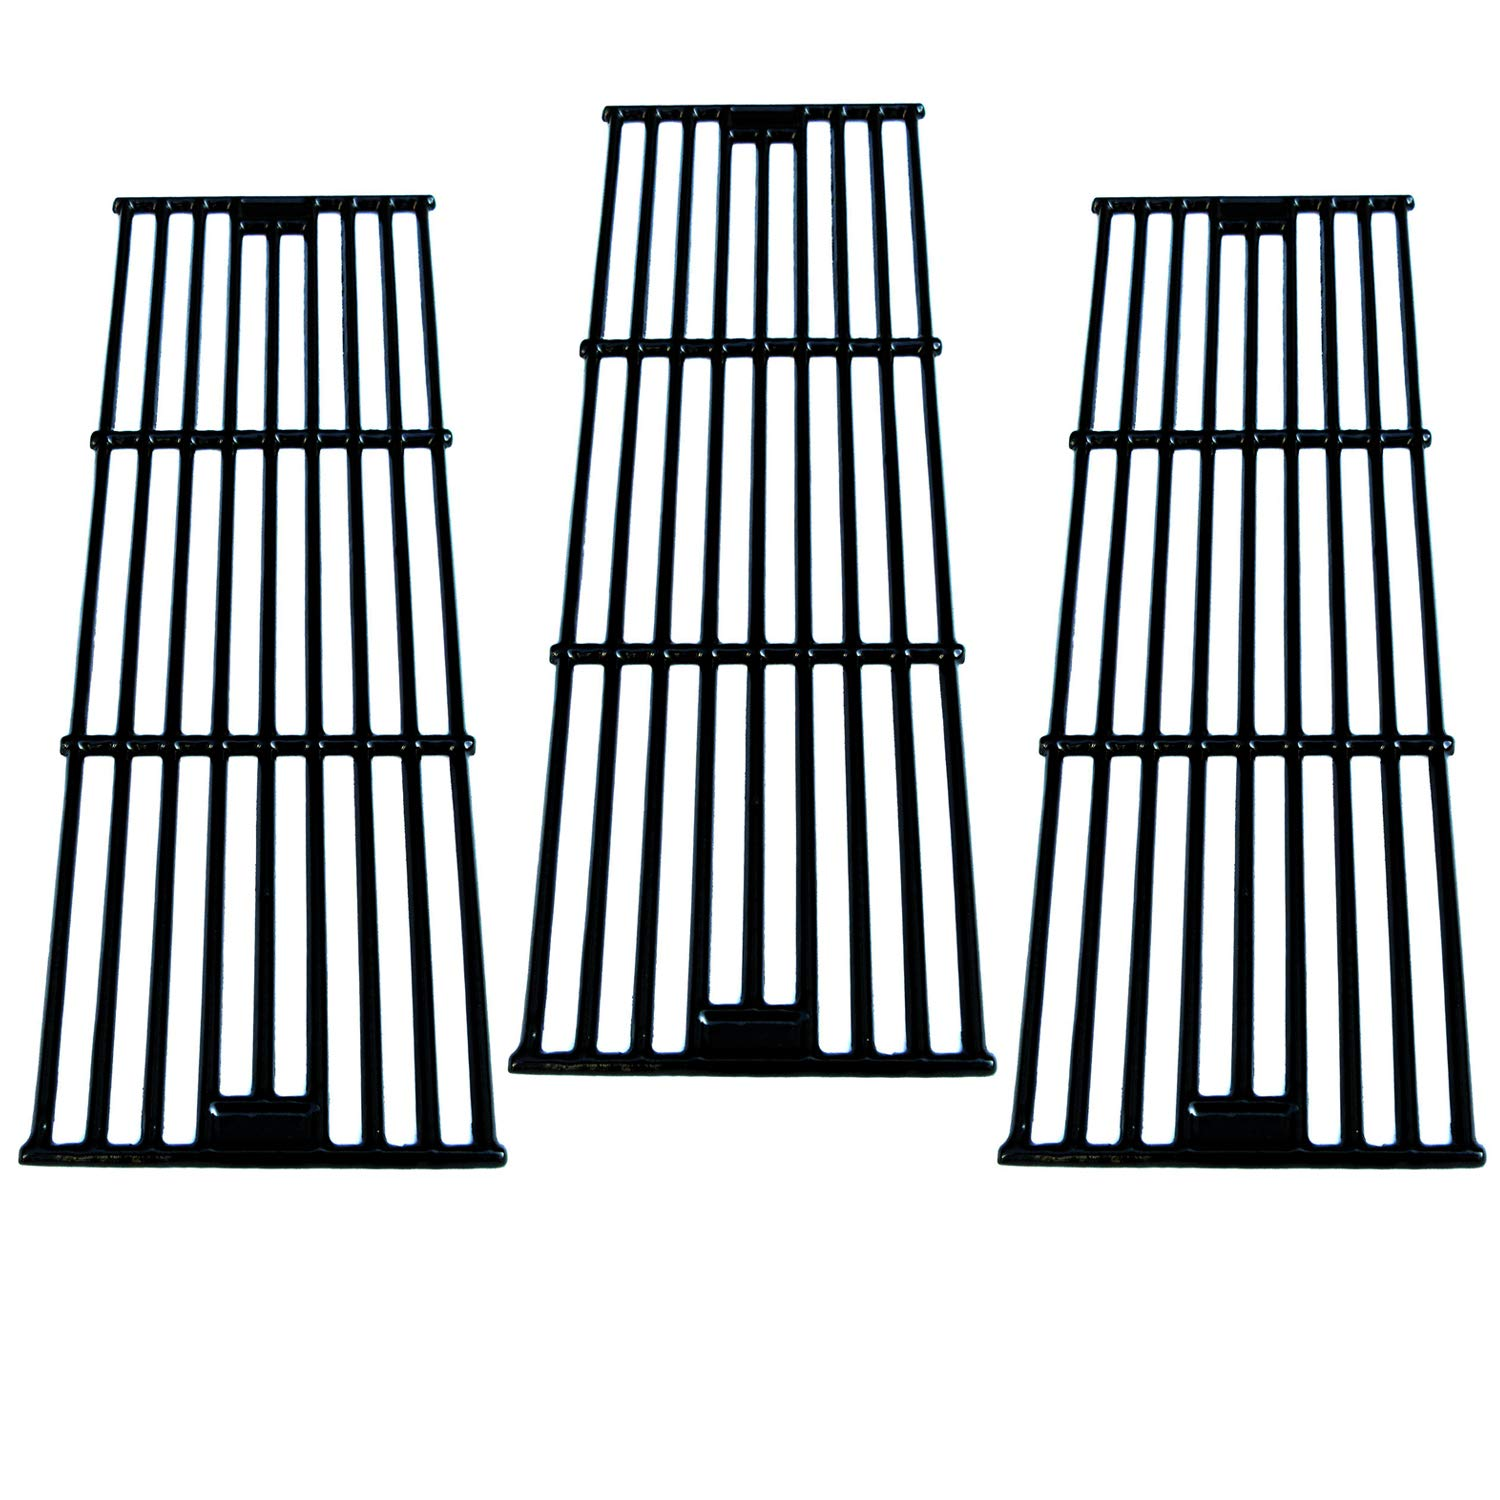 Direct store Parts DC114 (3-Pack) Porcelain Cast Iron Cooking Grid Replacement Chargriller, King Griller Gas Grill (3) by Direct Store